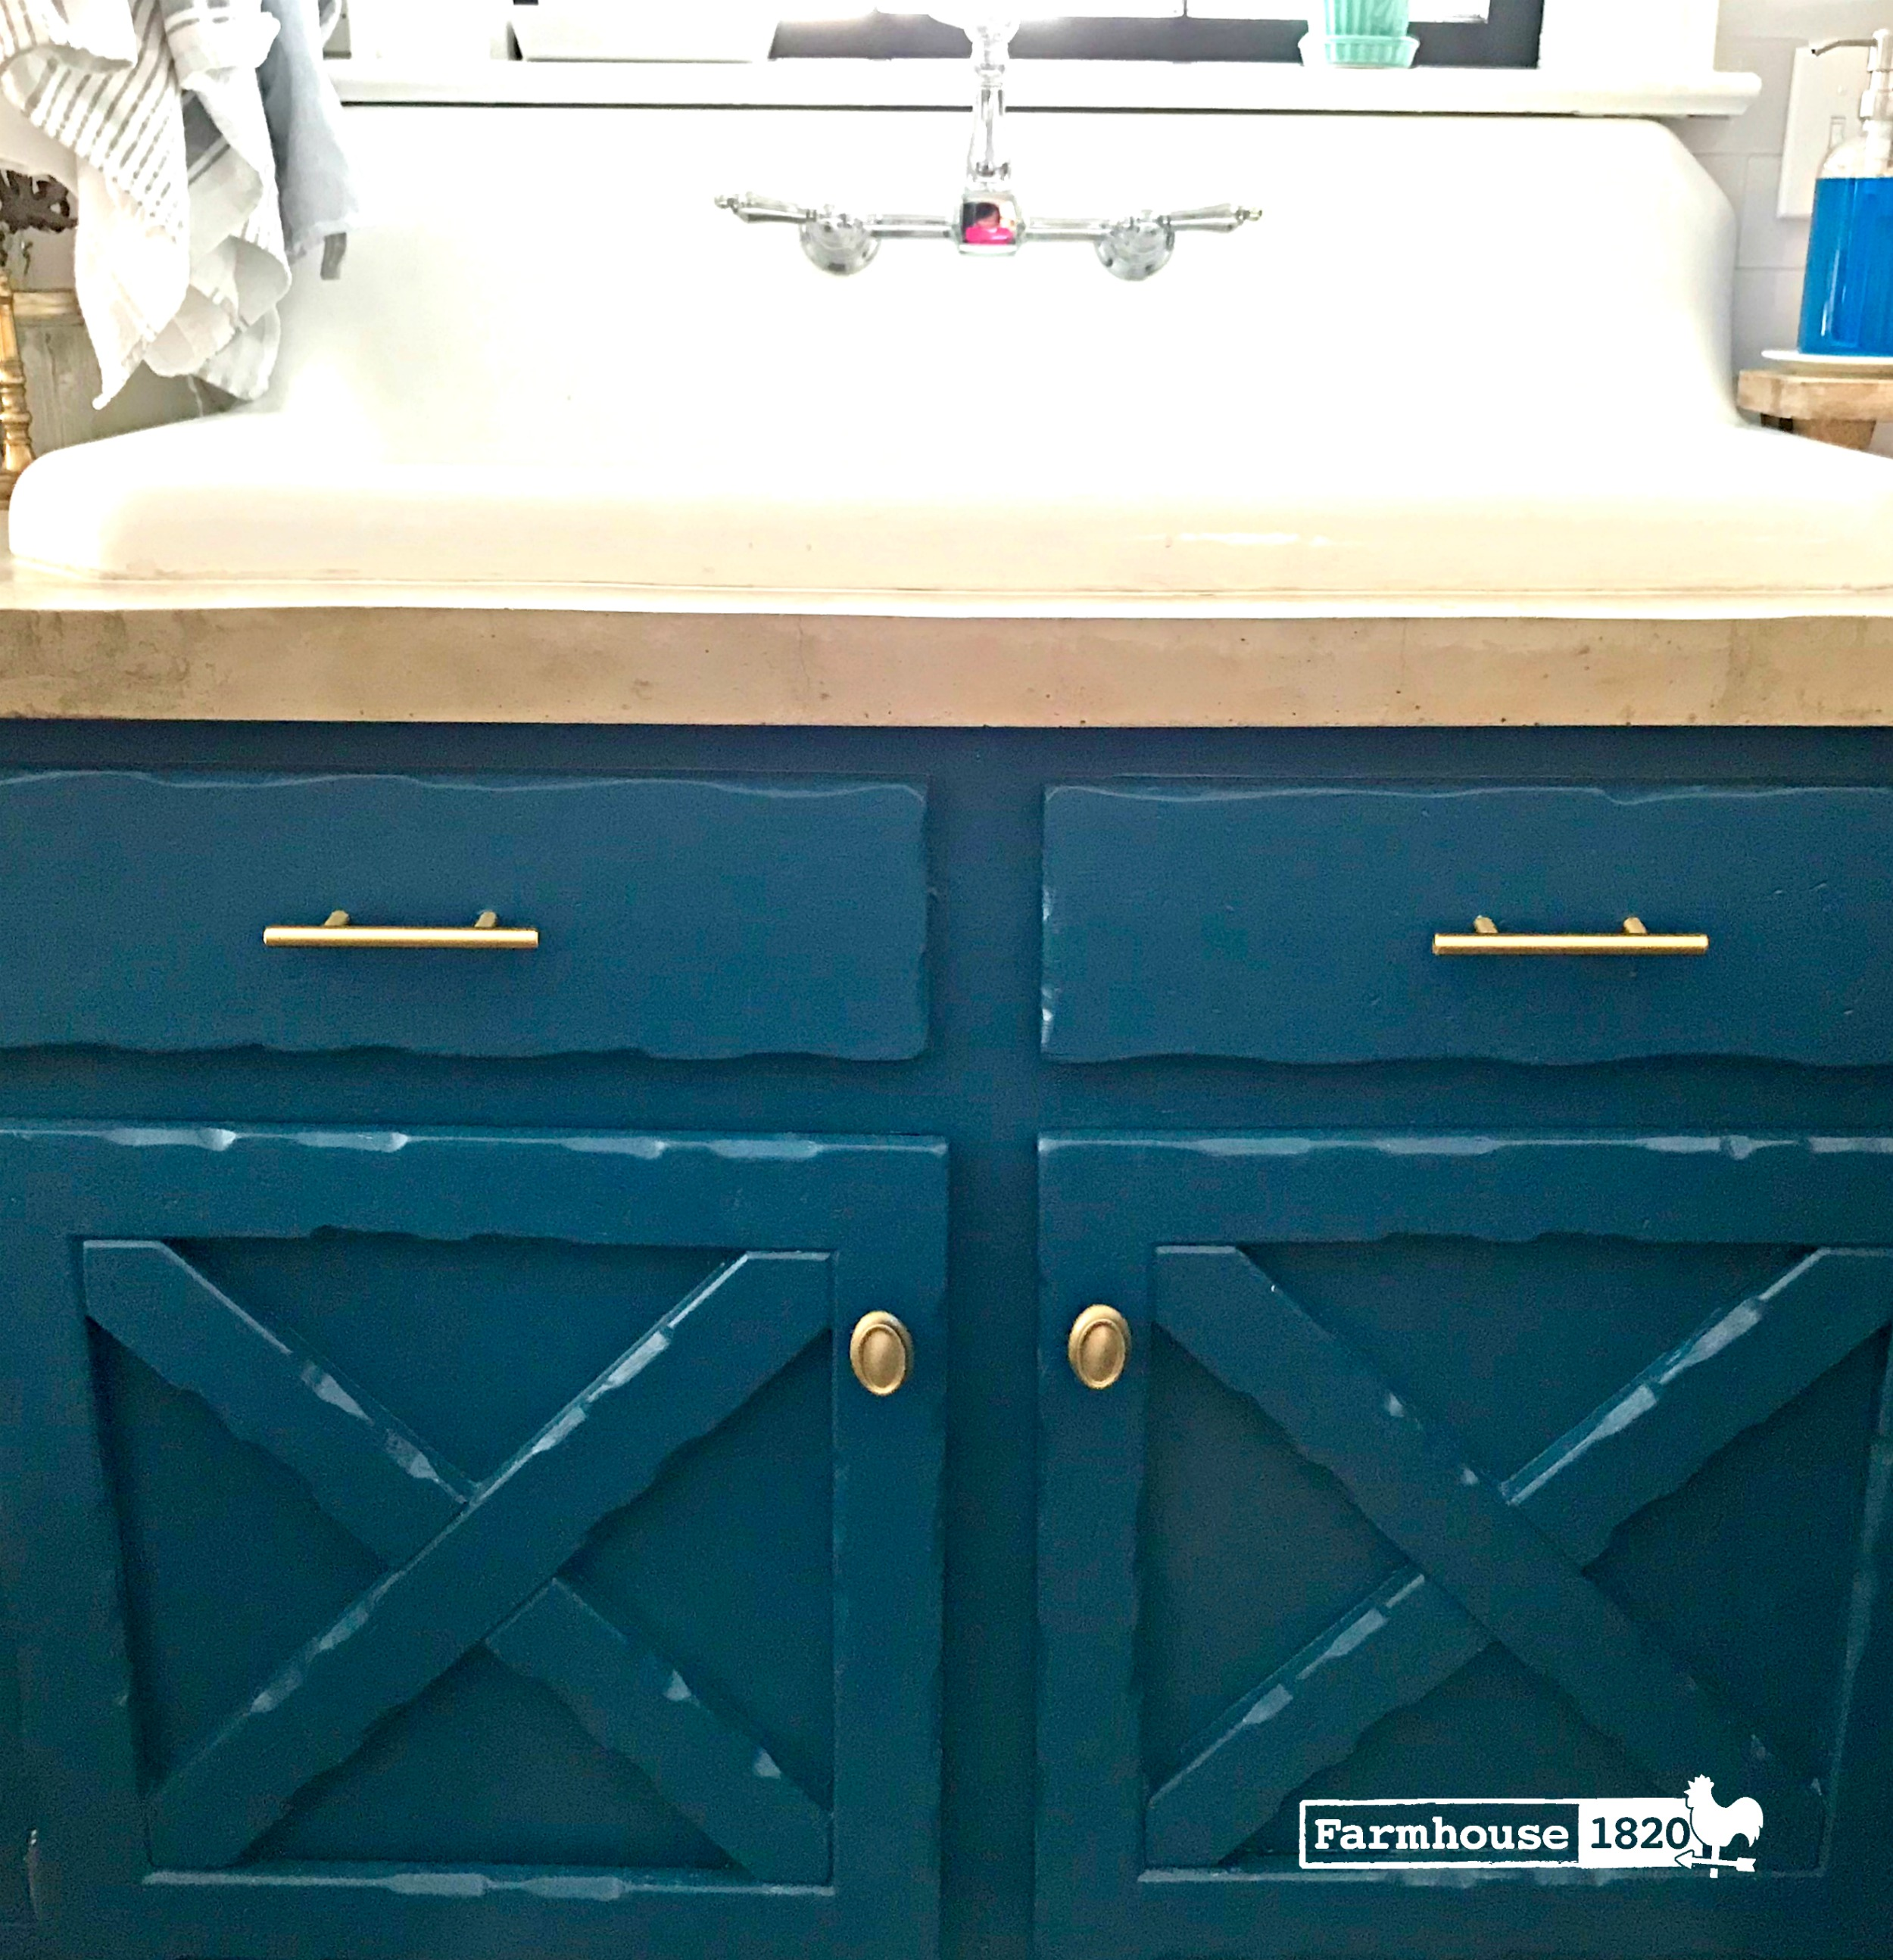 Kitchen cabinets - the sink area